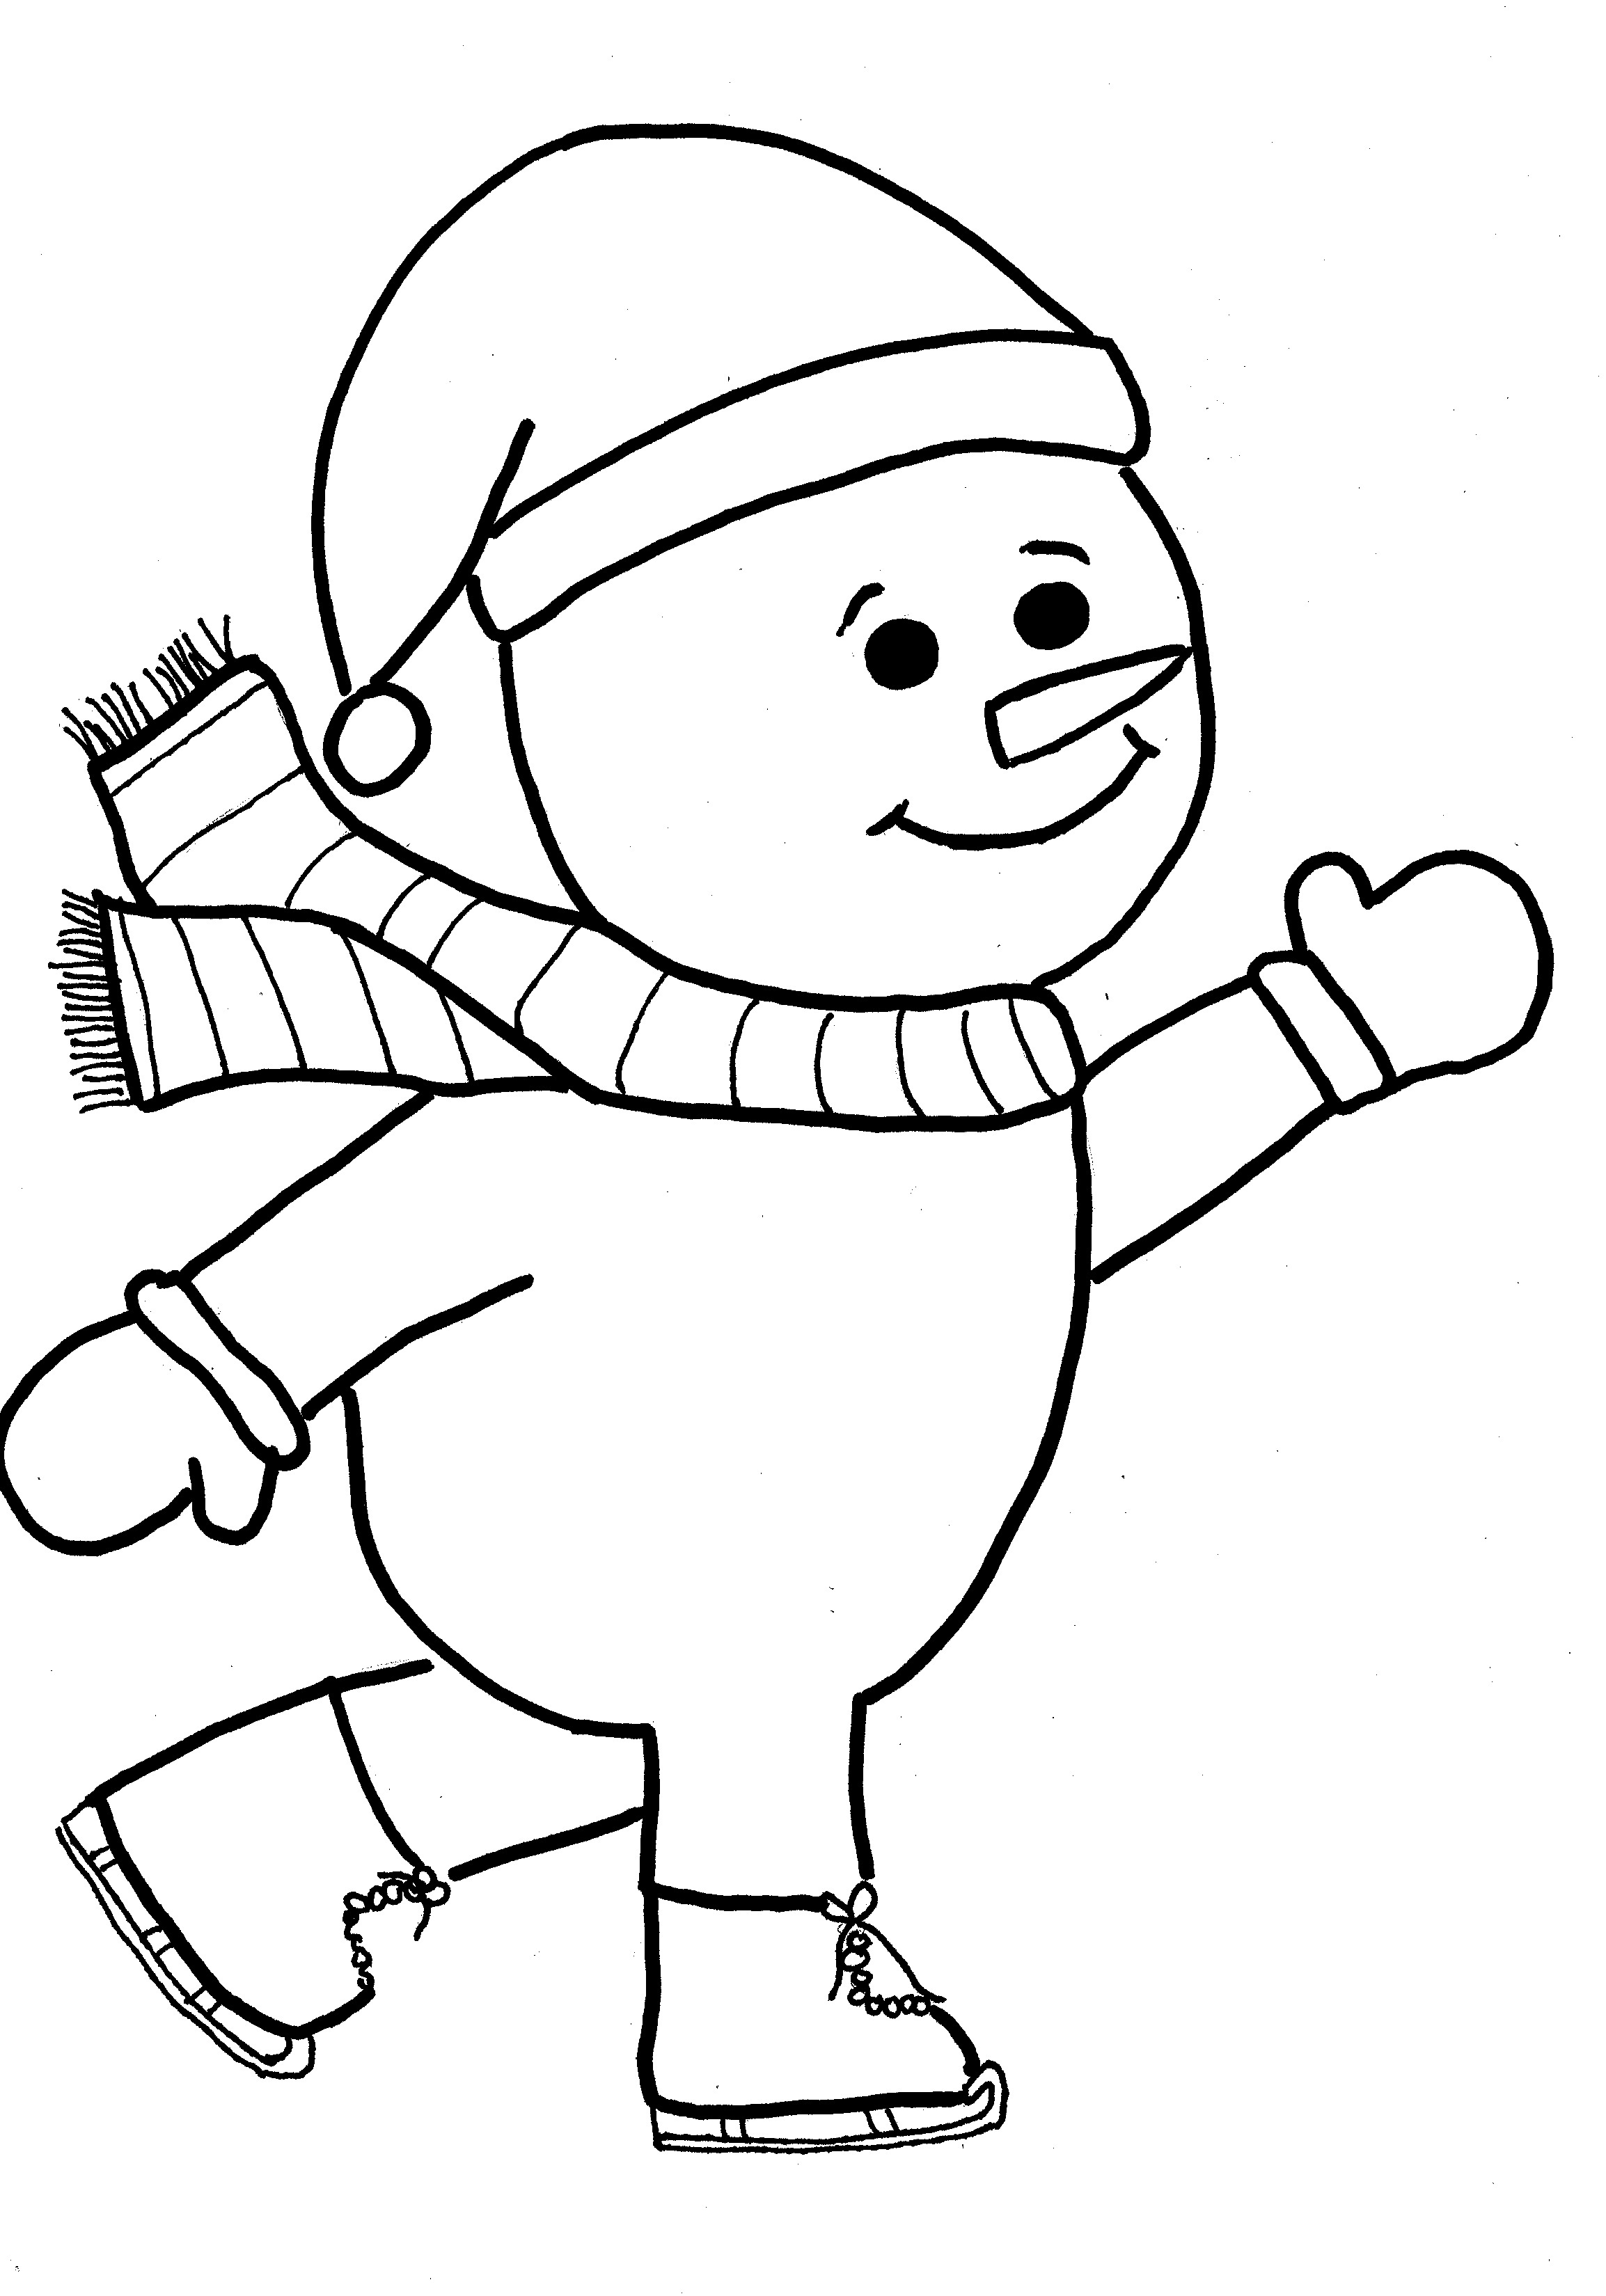 100 ideas snowman printable coloring sheet on www spectaxmas download